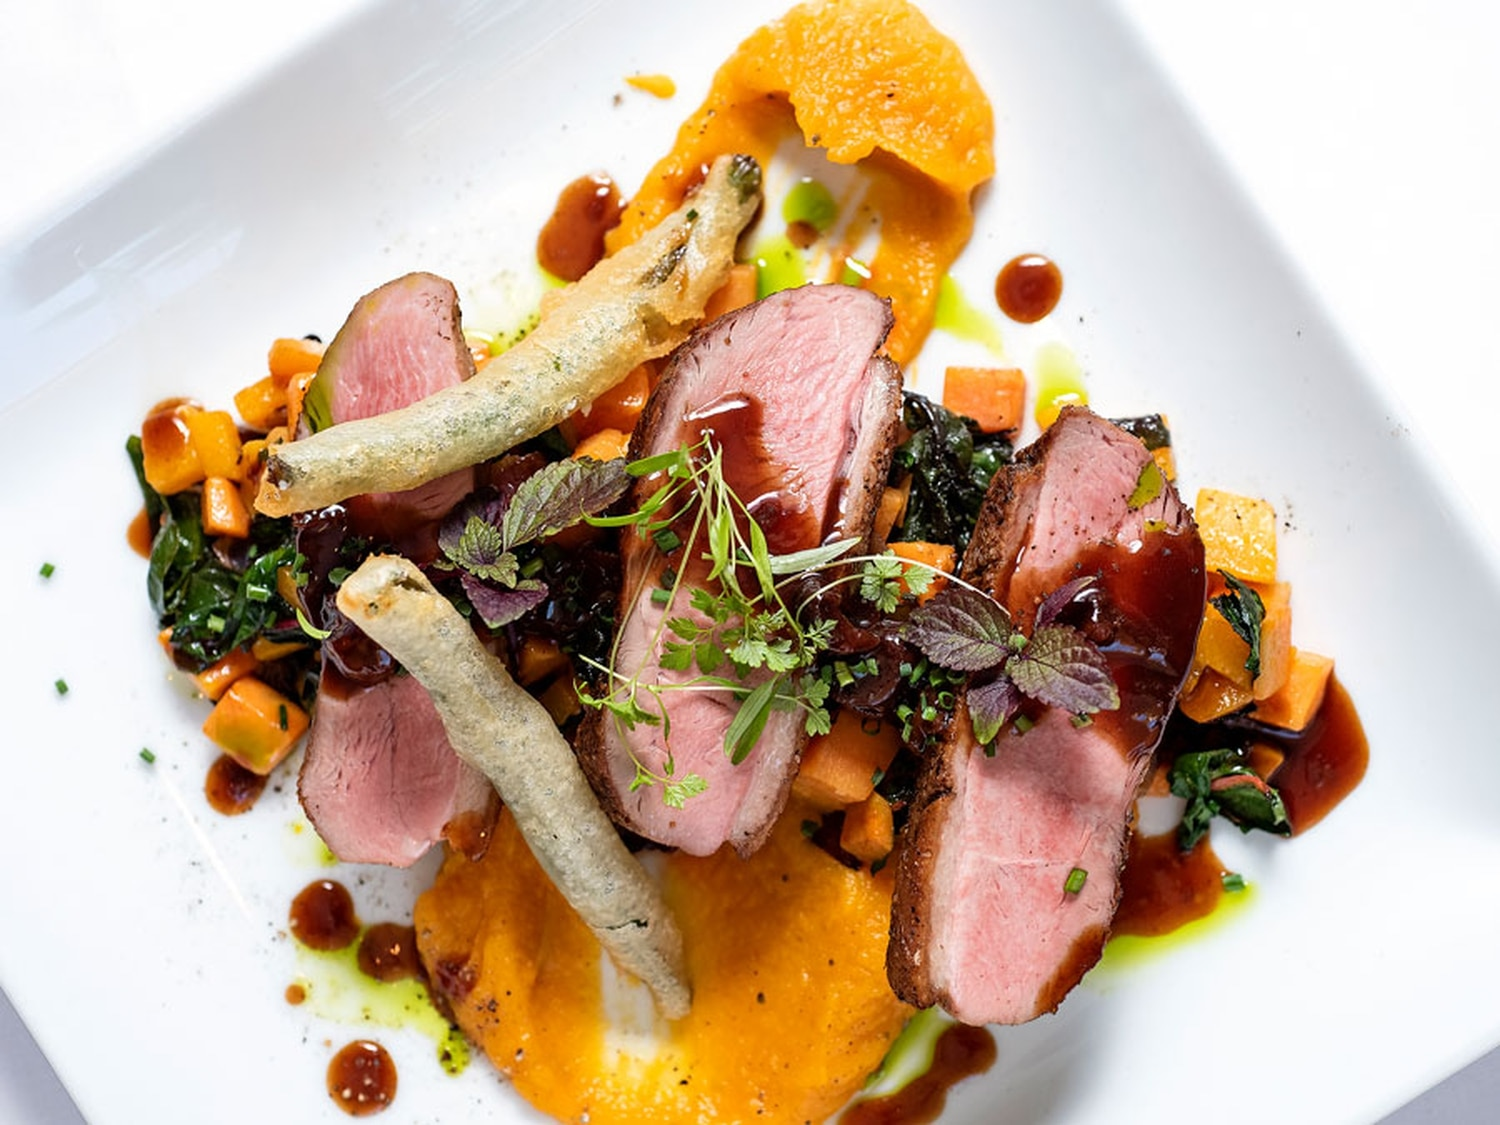 Pan roasted breast of duck with sweet potato hash, Swiss chard, sweet potato puree